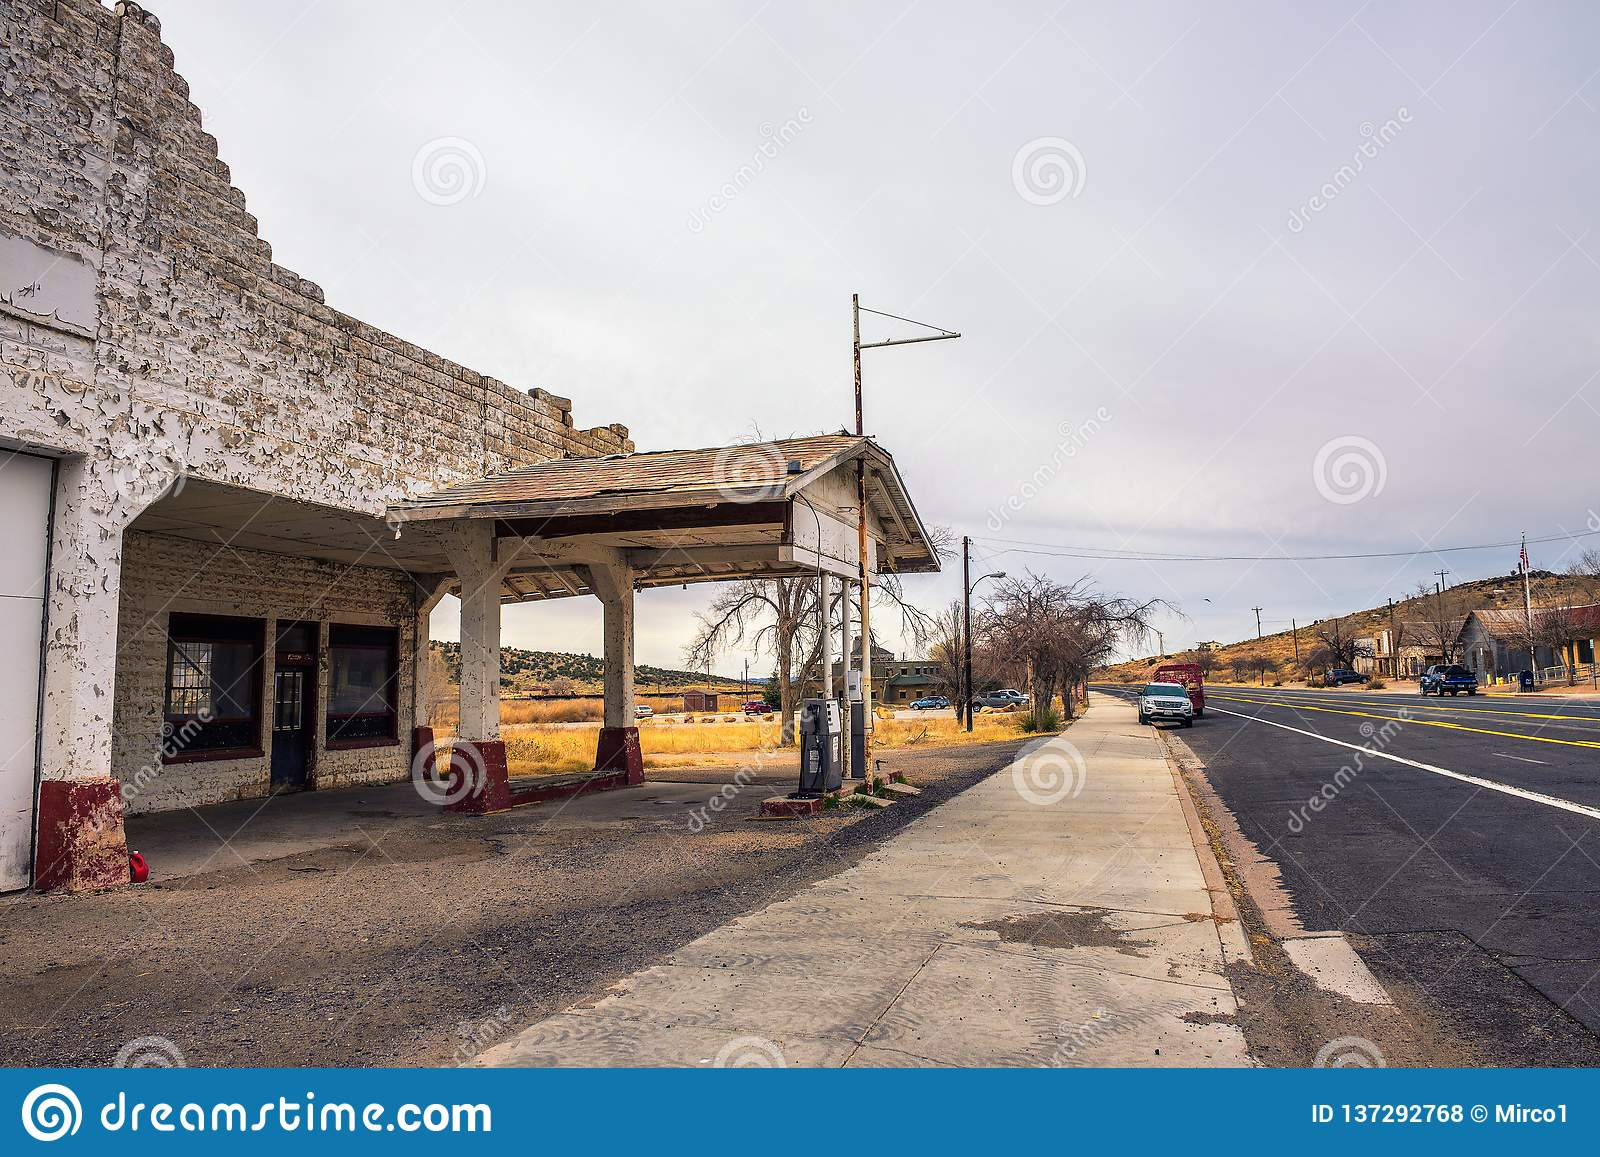 Abandoned Gas Station On Historic Route 66 In Arizona Editorial Stock Photo Image Of Route Gasoline 137292768